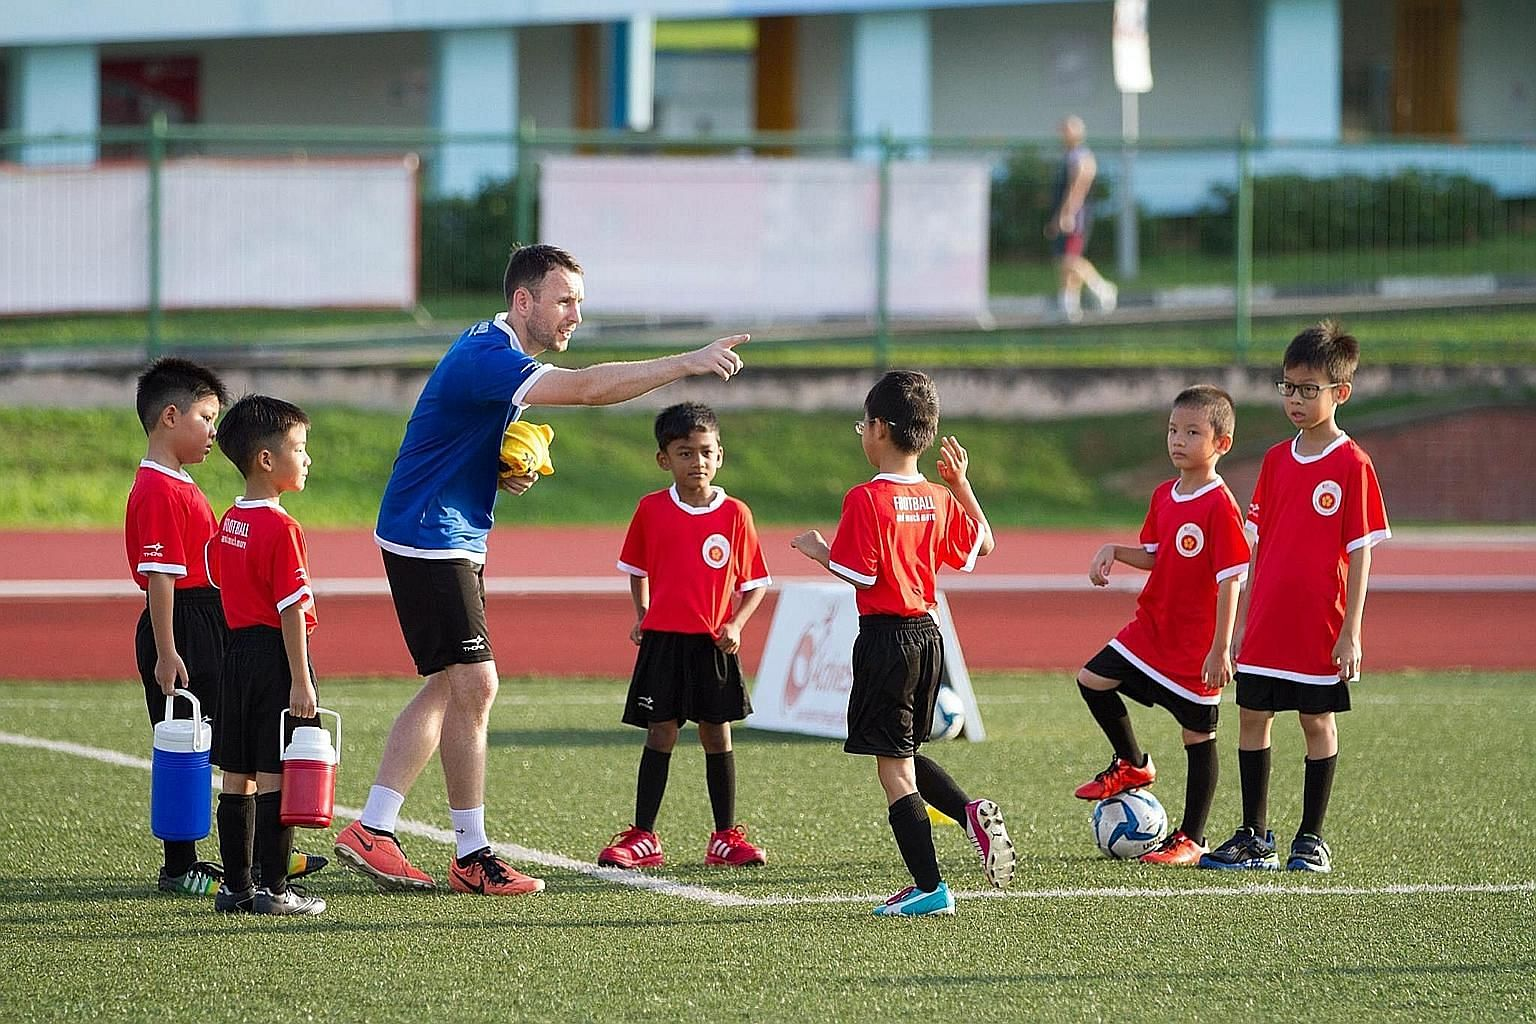 Mr Kenneth McGeough is one of the 20 volunteers with the Play It Forward initiative. A former Under-21 player with Irish top-tier team Shamrock Rovers, he coaches children under 12 in football at the Queenstown Stadium.